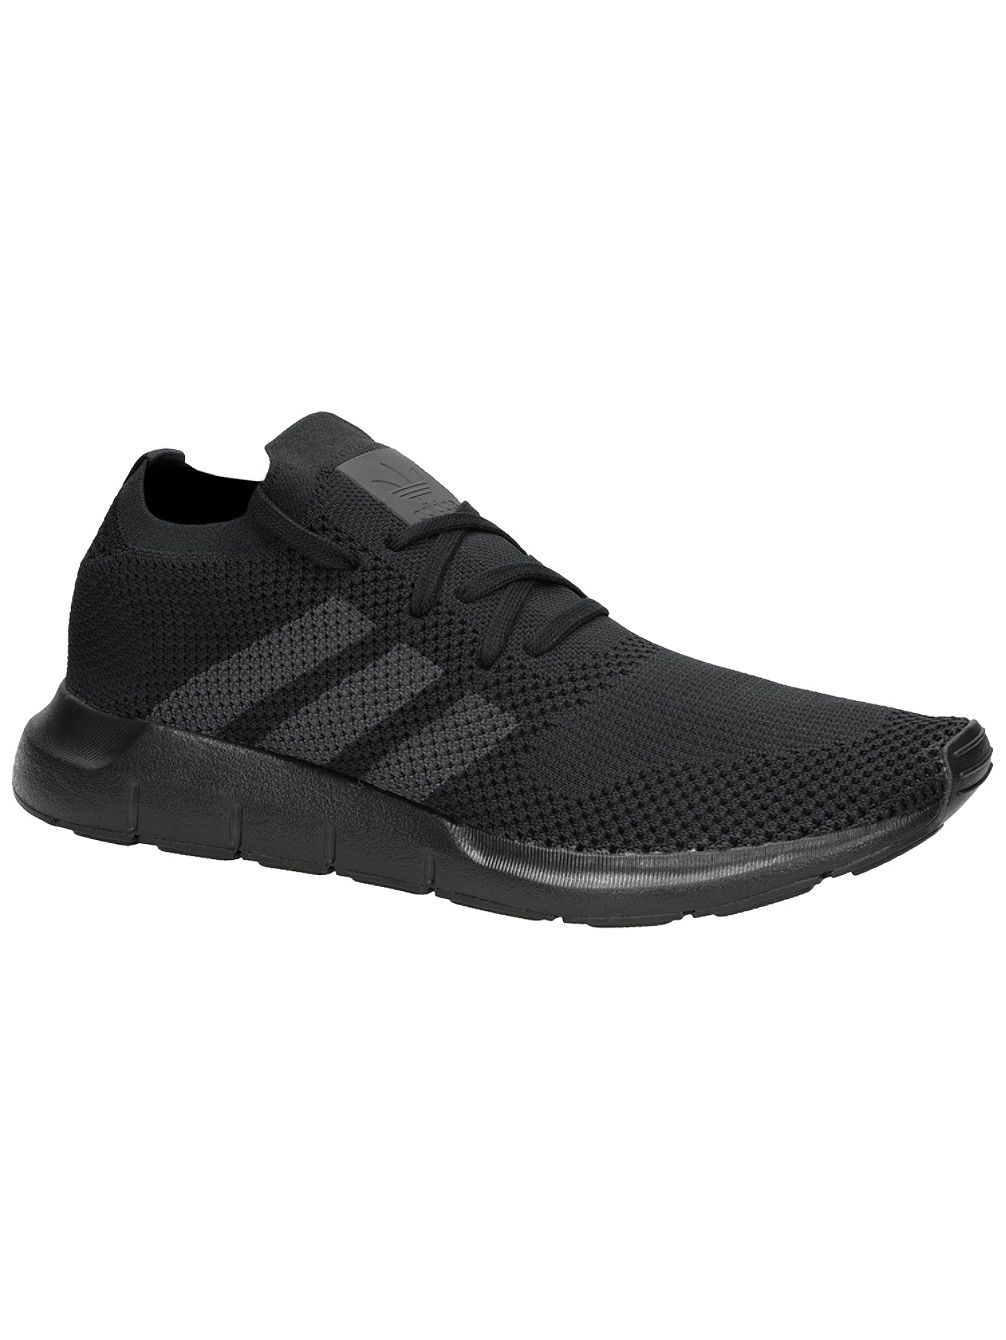 Swift Run Primekit Sneakers